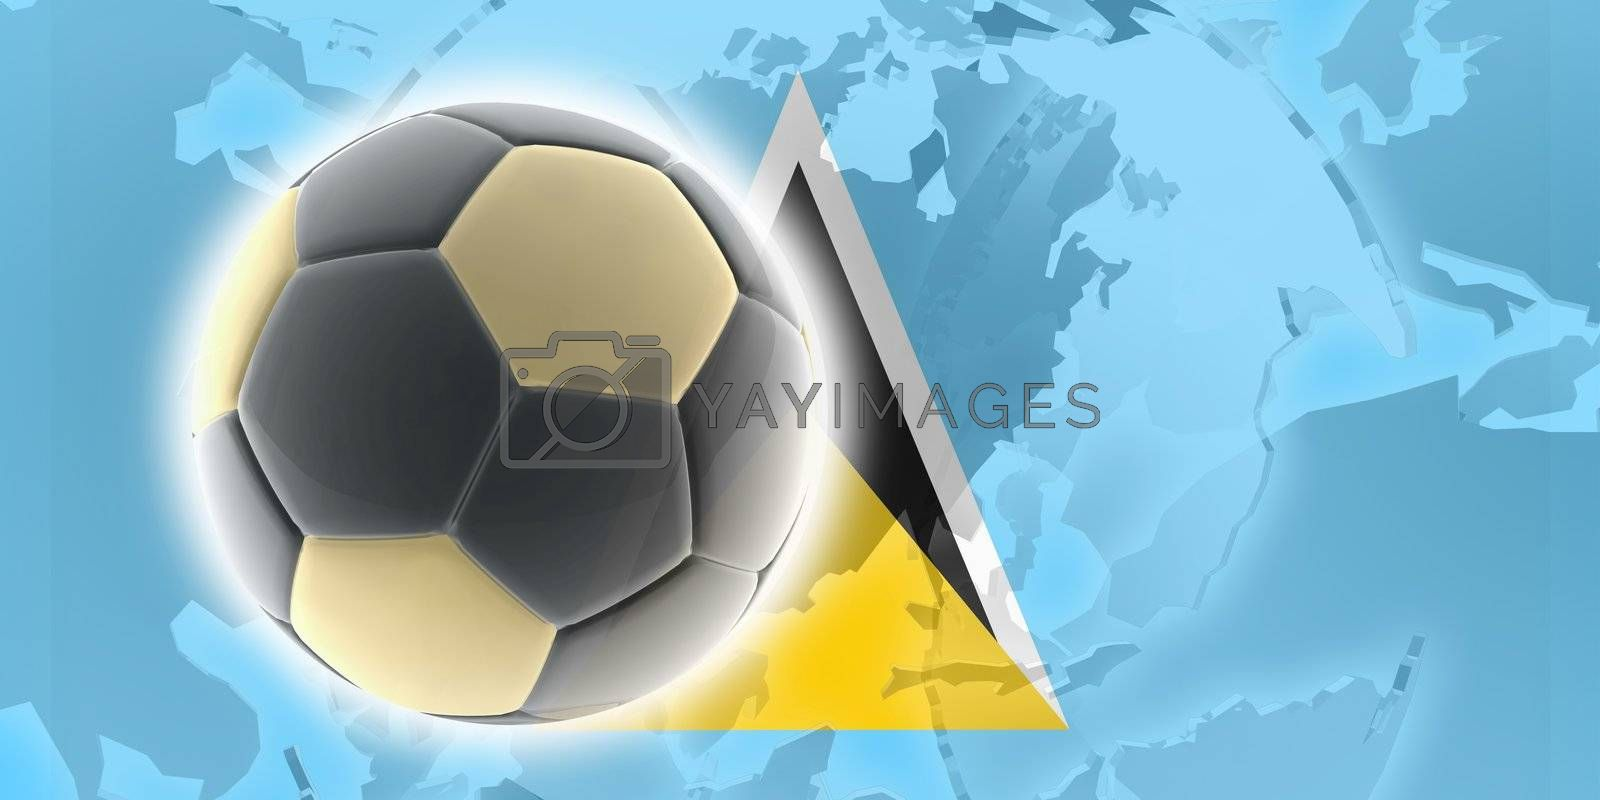 Flag of Saint Lucia, national country symbol illustration sports soccer football